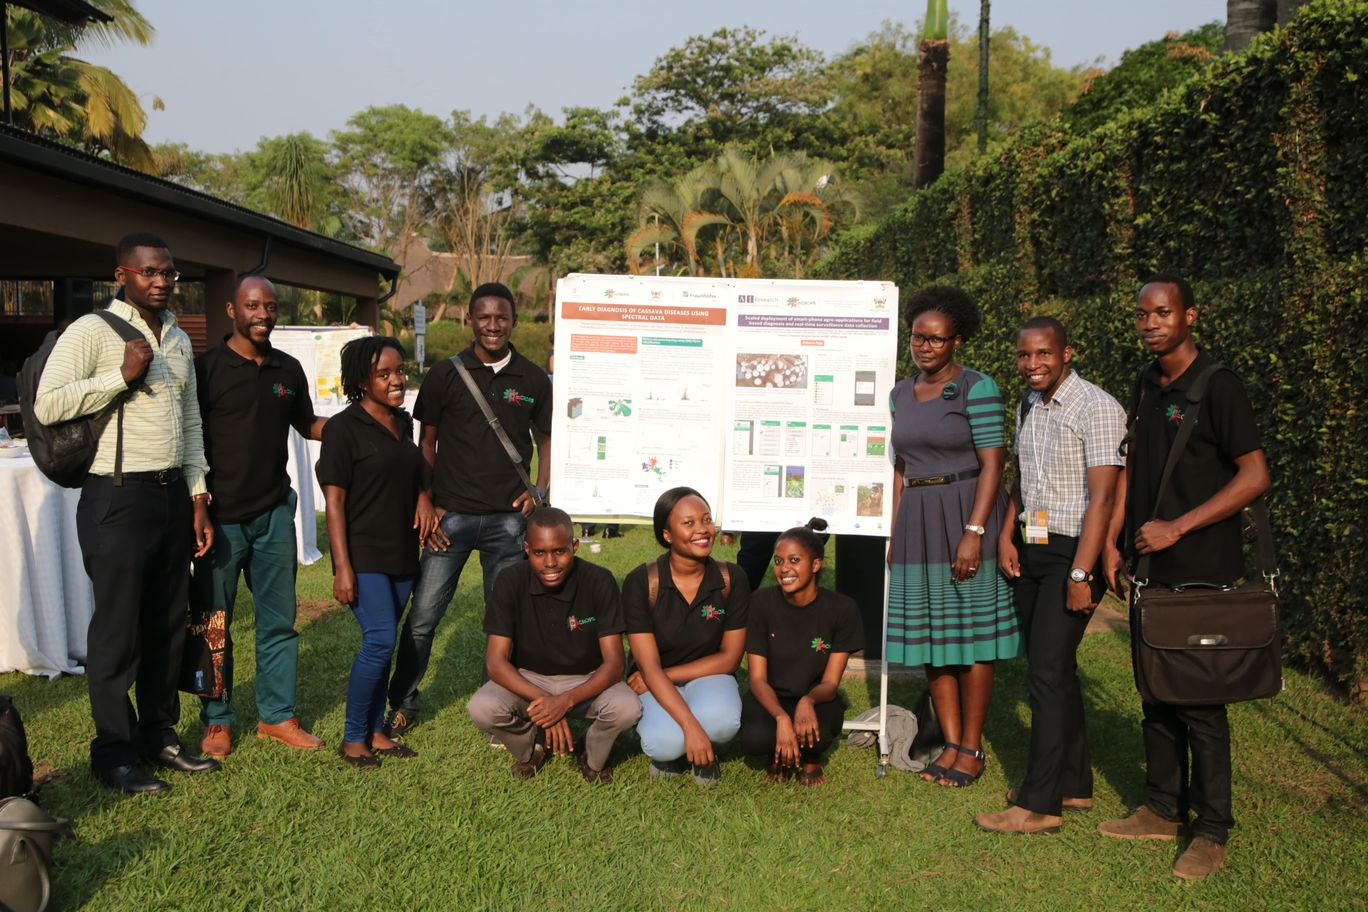 Head of Makerere Artificial Intelligence lab Wins Grant